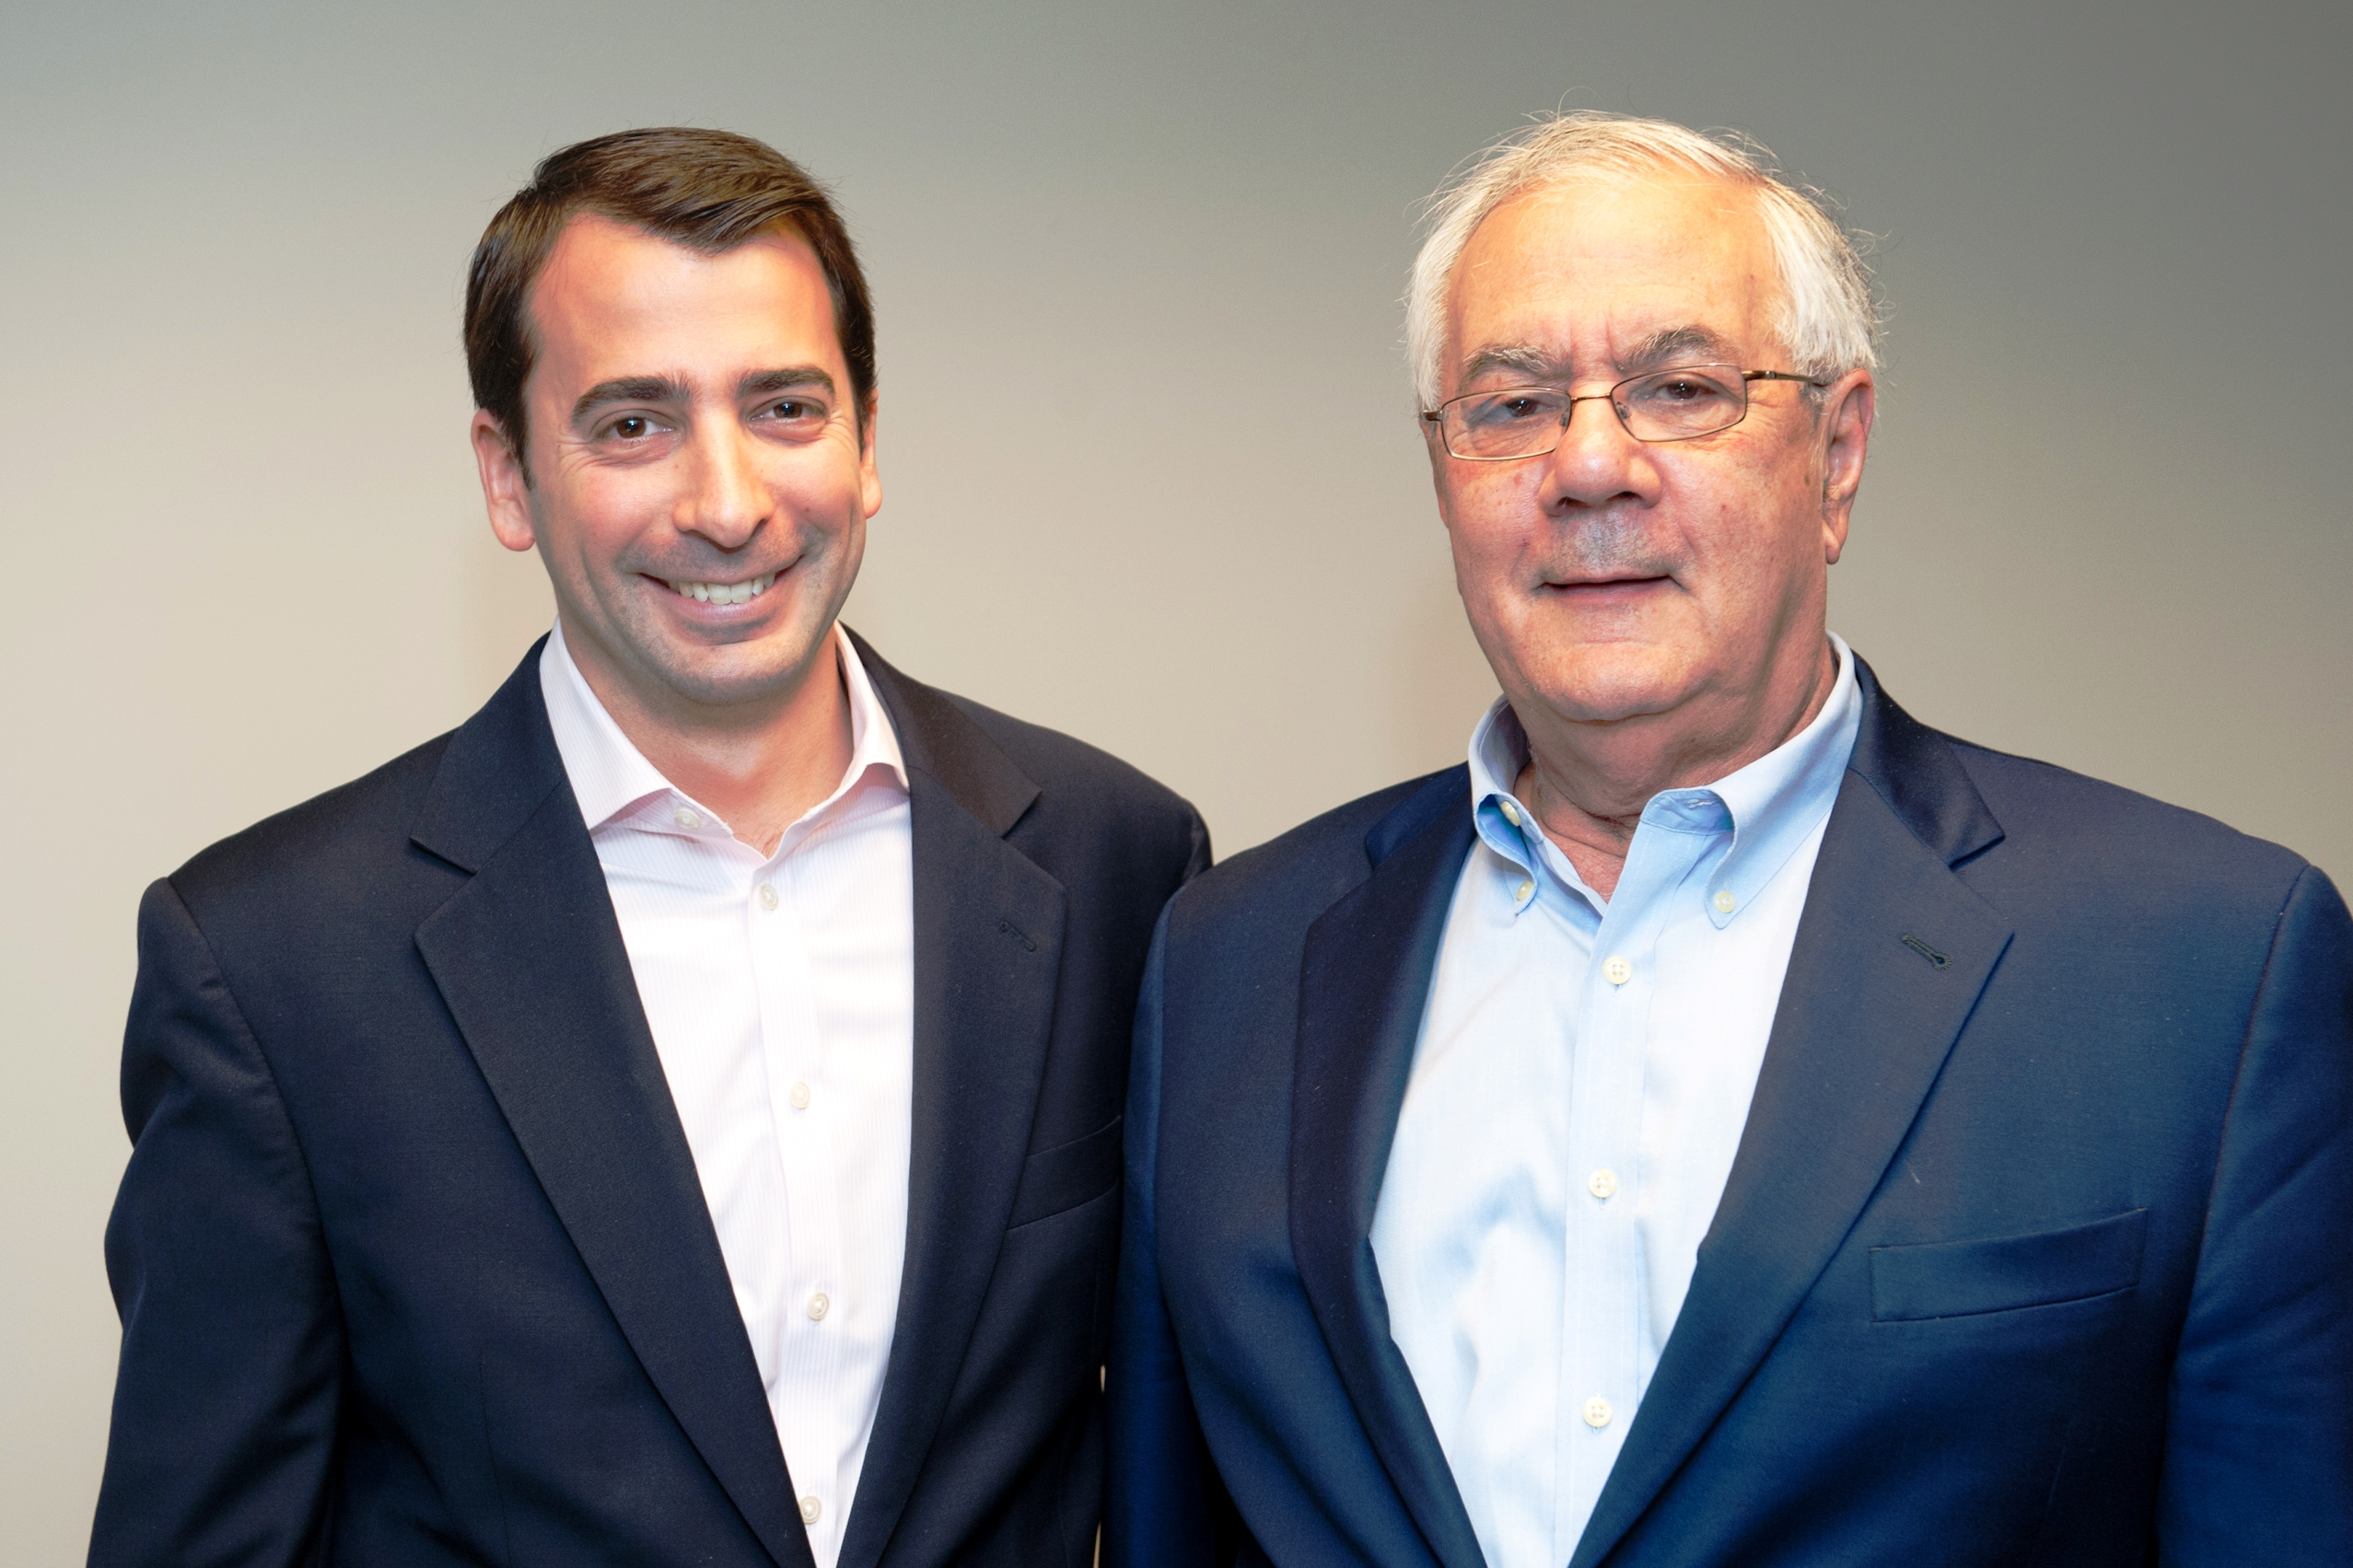 Brian With Barney Frank